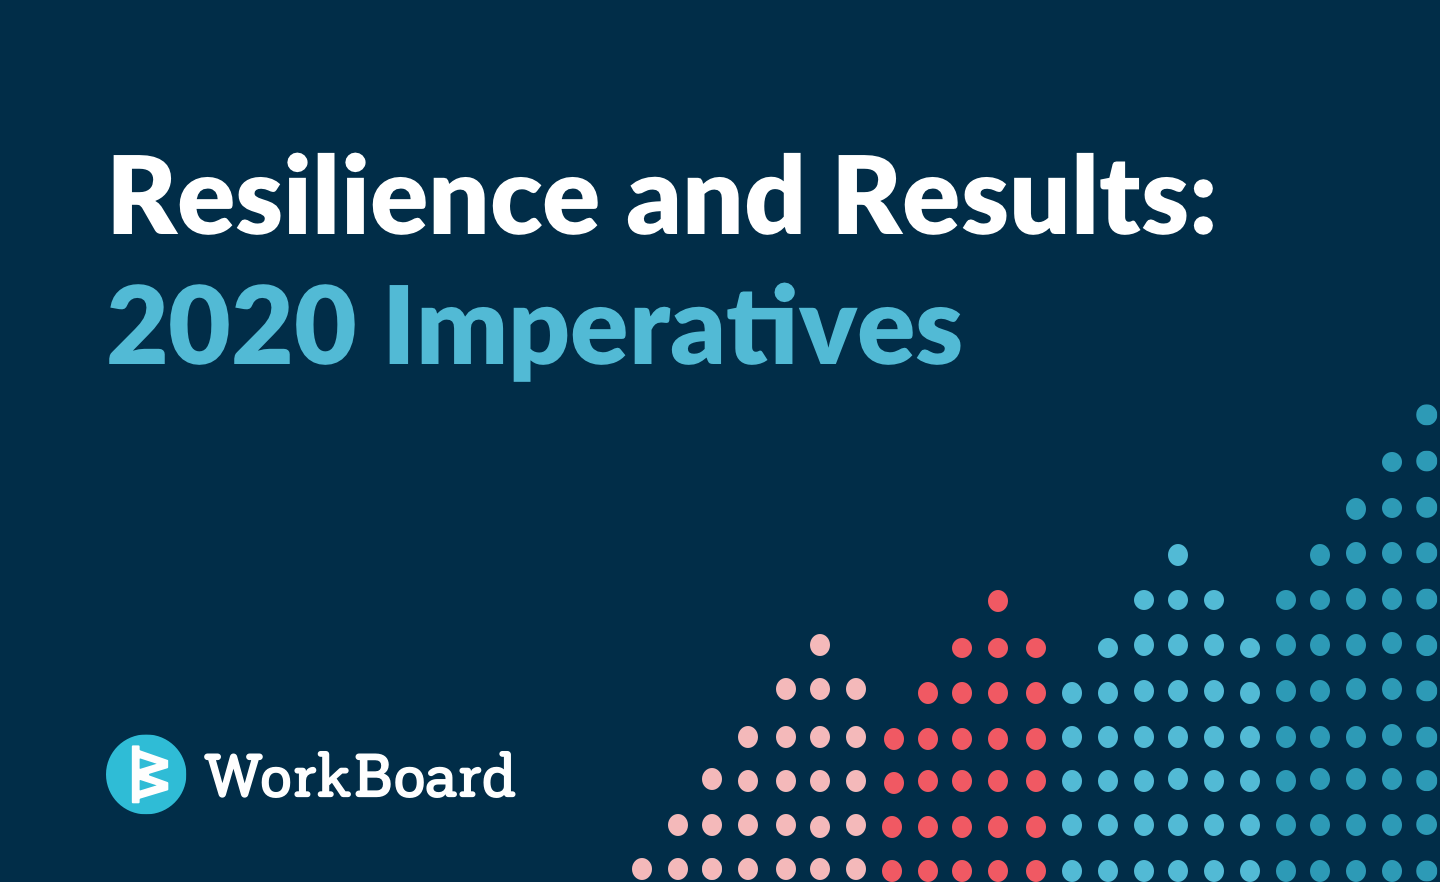 Blog Post: Resilience and Results: 2020 Imperatives